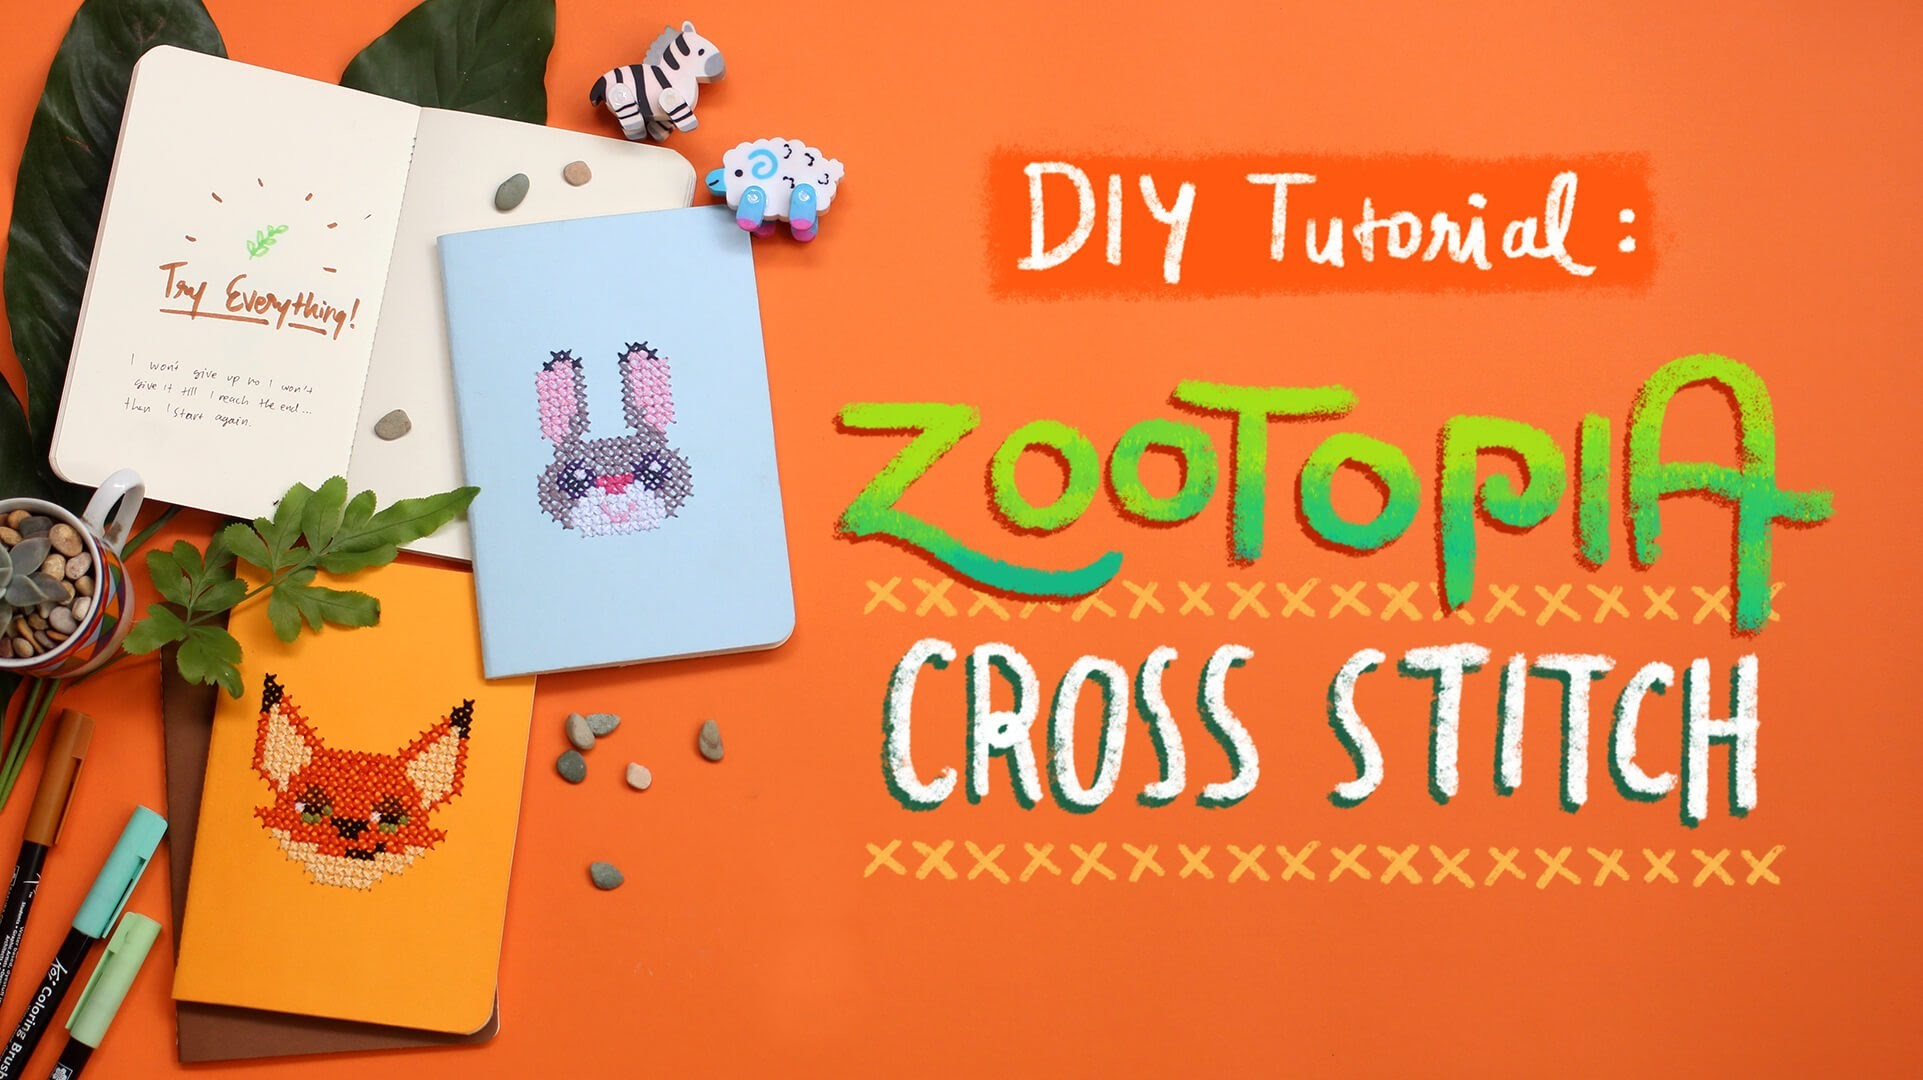 DIY Tutorial: Cross Stitch Notebook Cover   Today's Attempt by Treswaluya